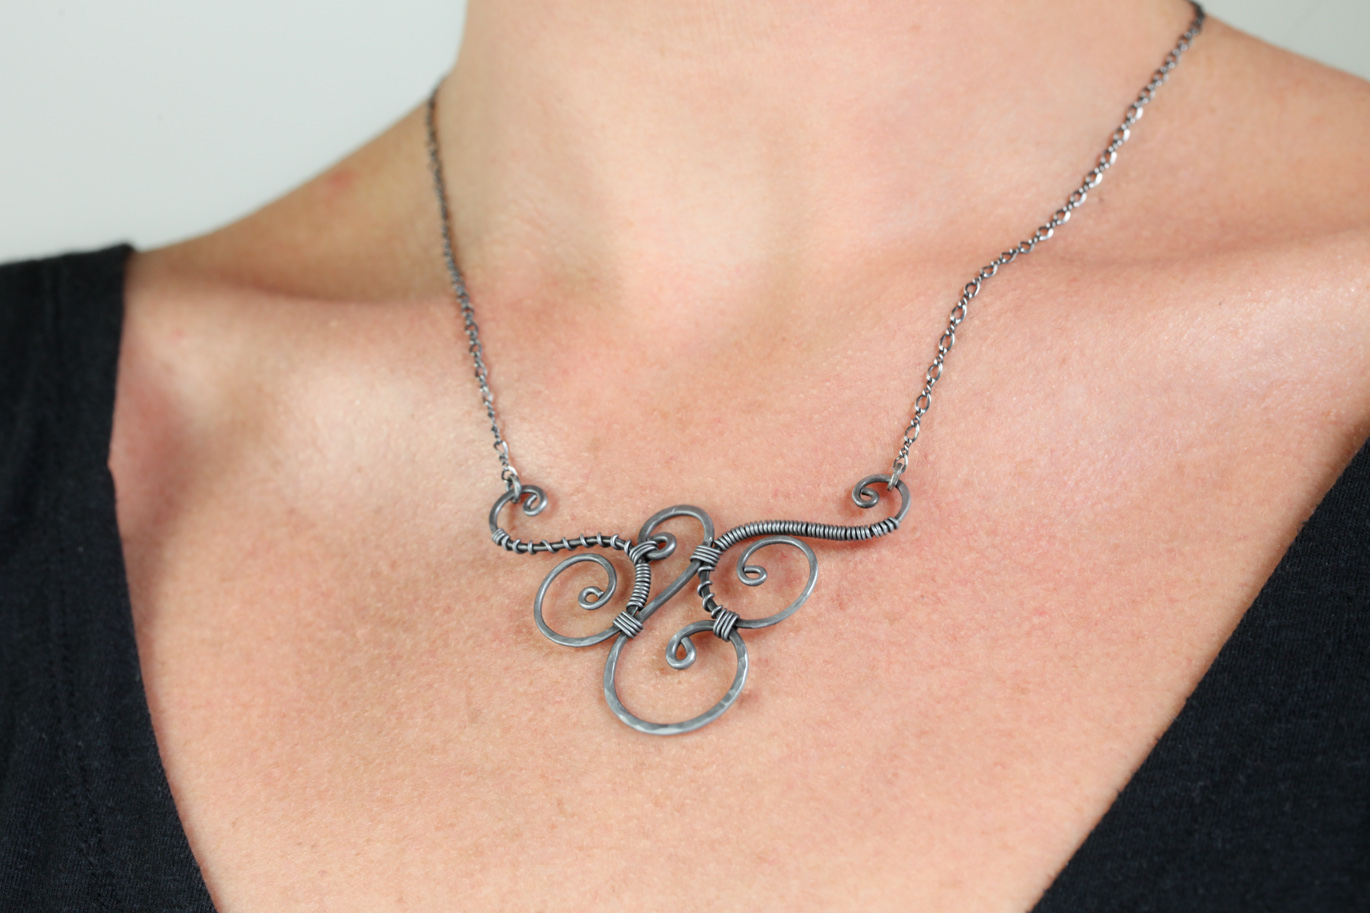 Vintage hammered silver tone wire-wrapped metal cross on 30\u201d chain